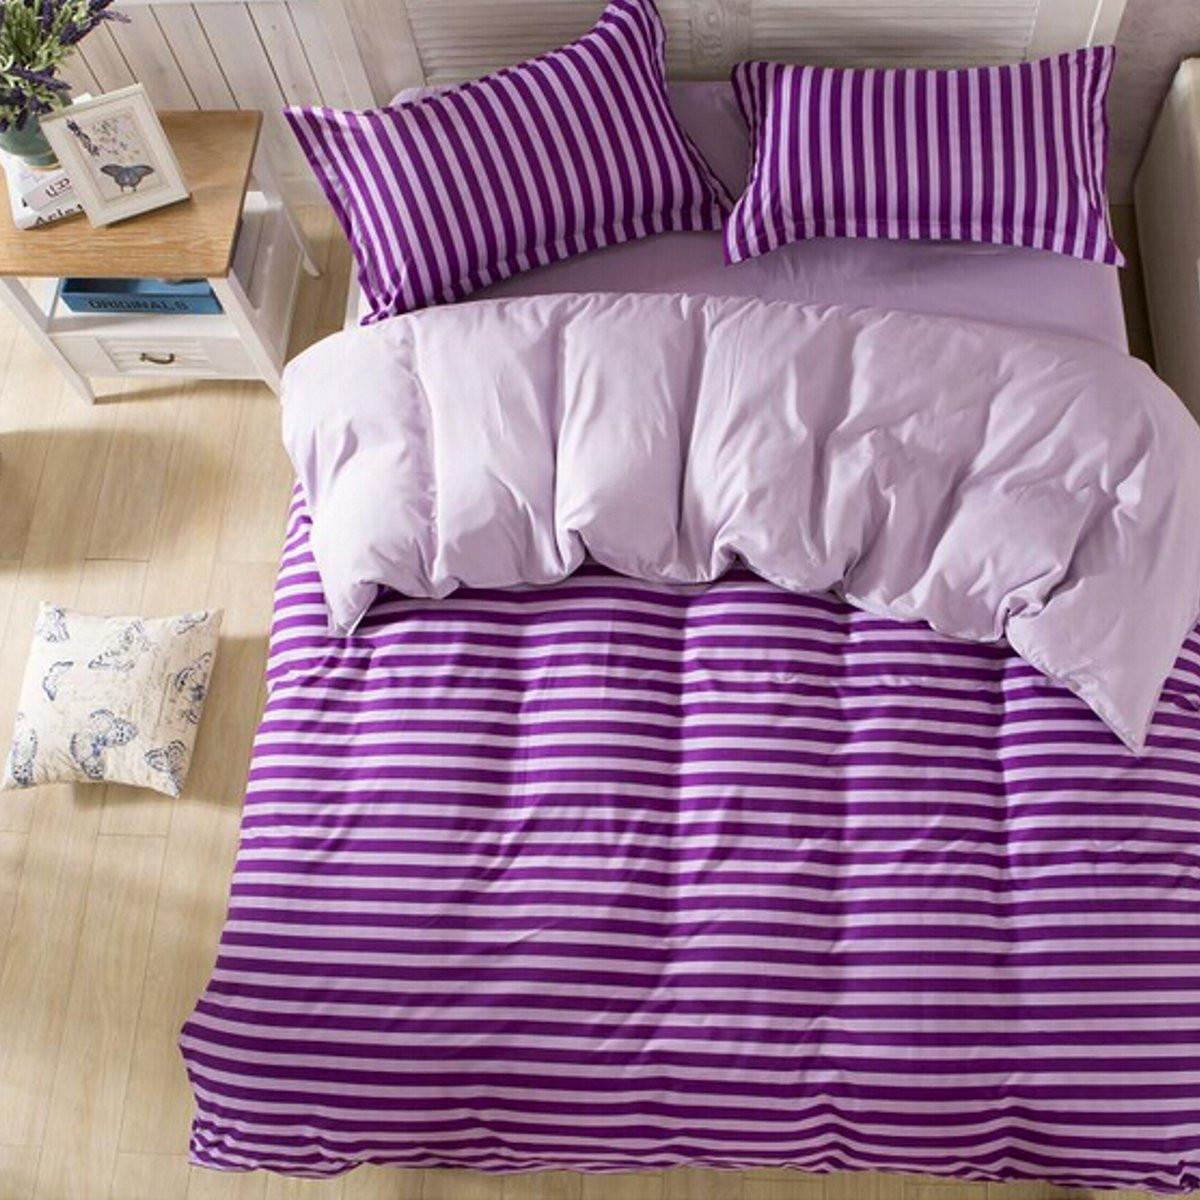 Single Double King Size Purple Stripe Printed Bedding Sets Polyester  Pillowcases Quilt Duvet Cover Bed Sheet